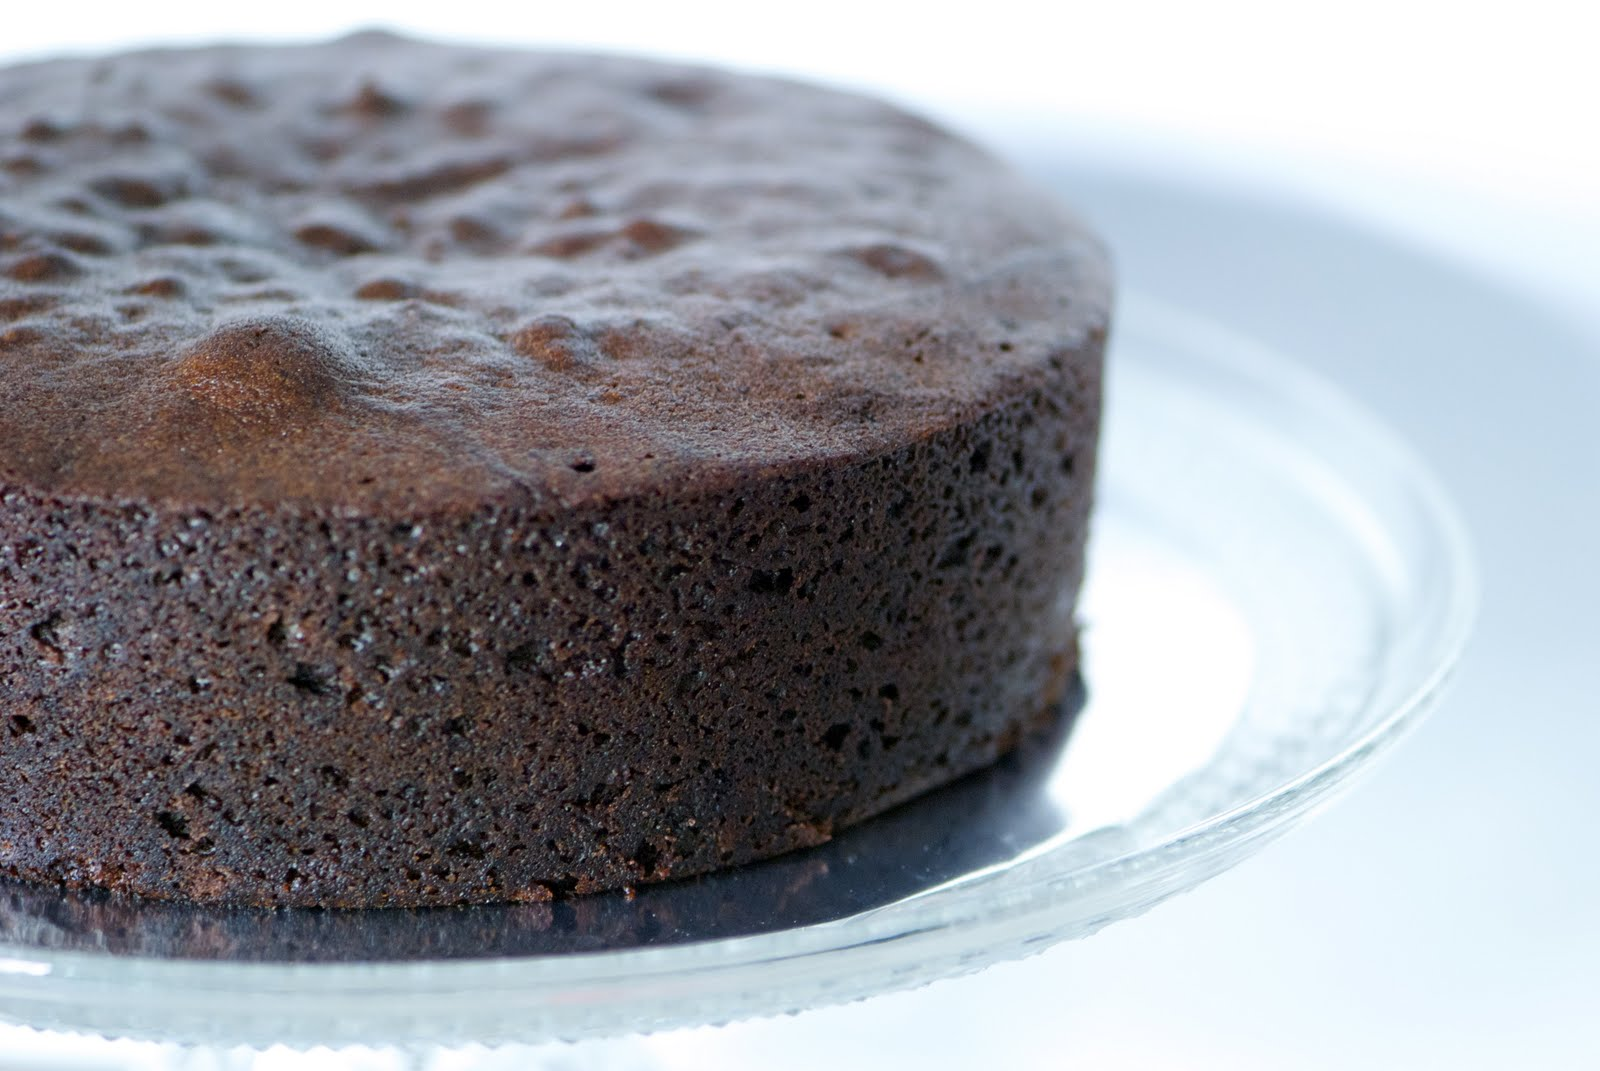 Kenbakes rich eurasian cakes baking a chocolate cake days leading to easter i have been baking chocolate cakes but just thought i try out this recipe from robins eurasian recipes forumfinder Choice Image